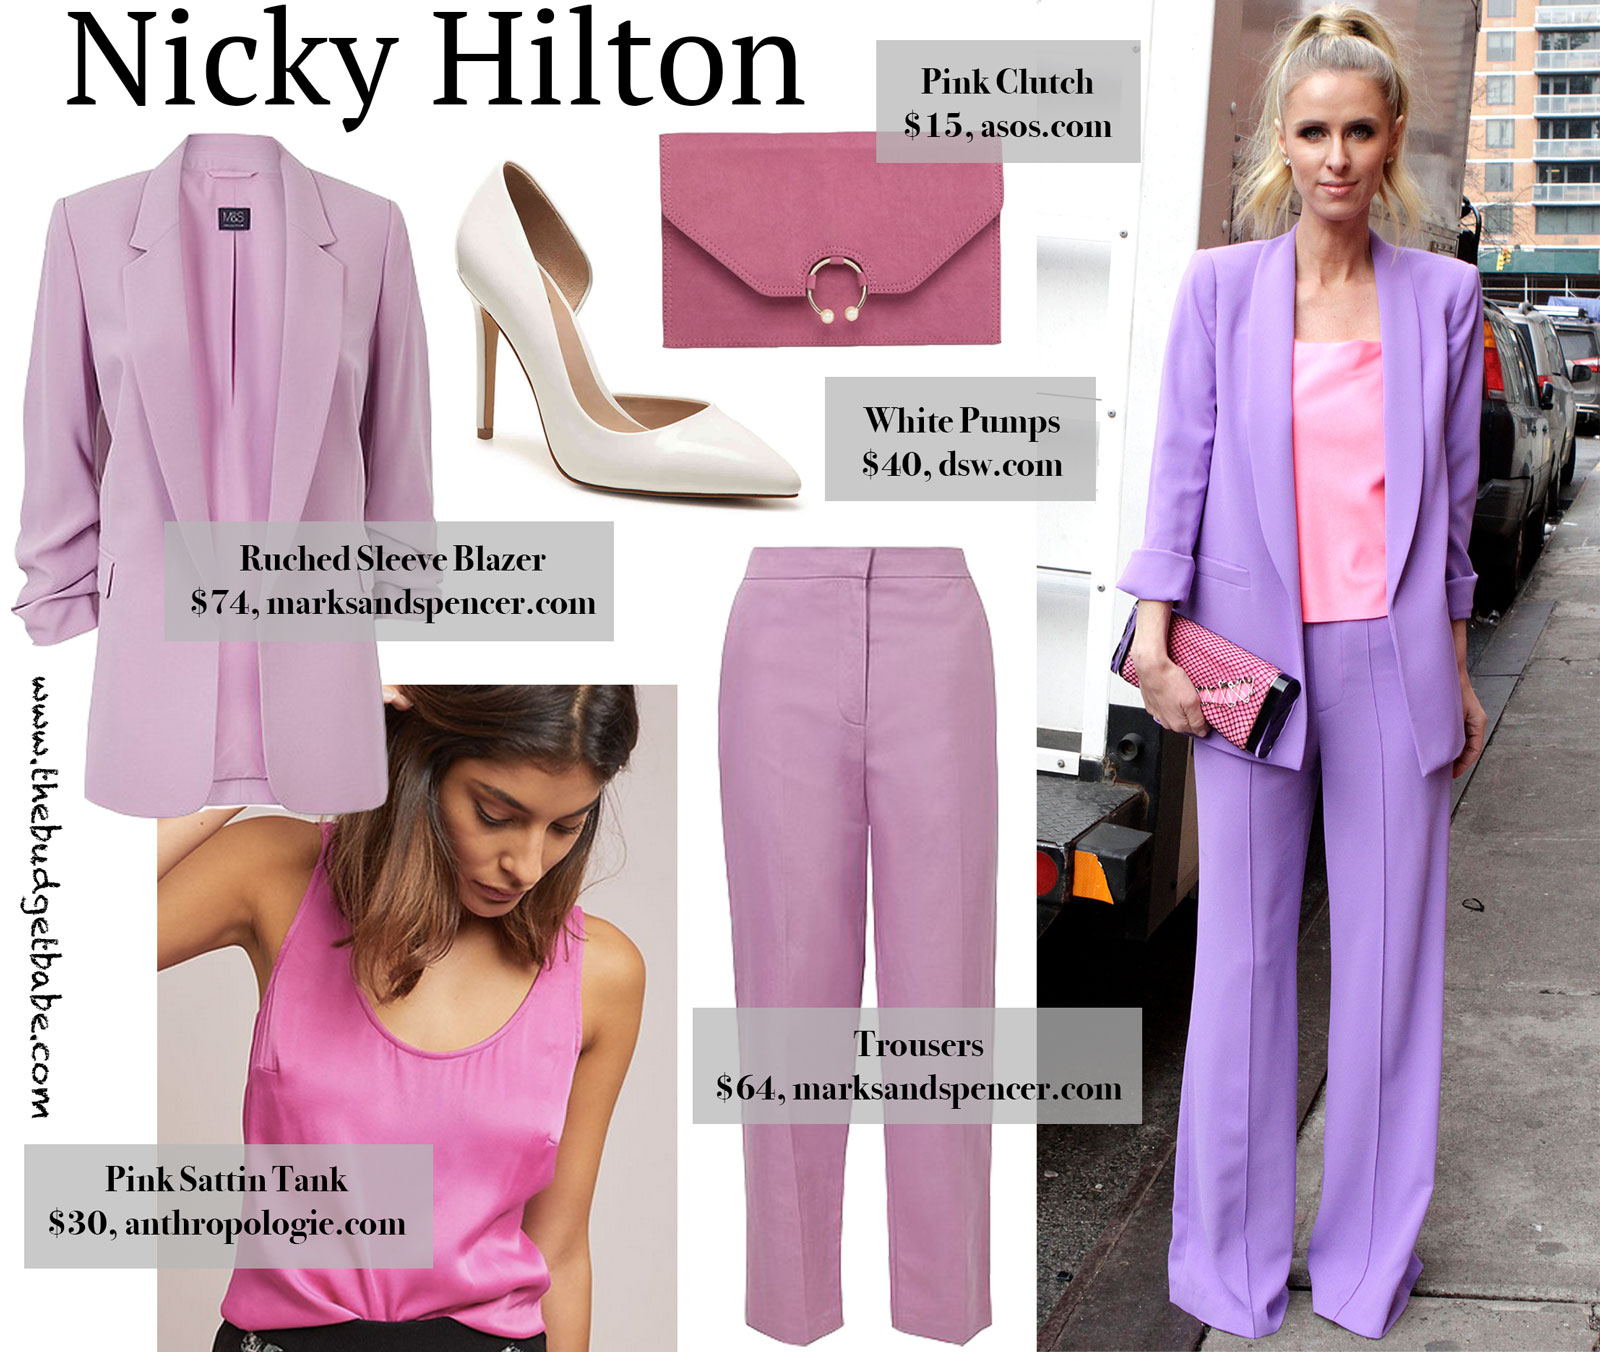 Nicky Hilton Purple Suit Look for Less